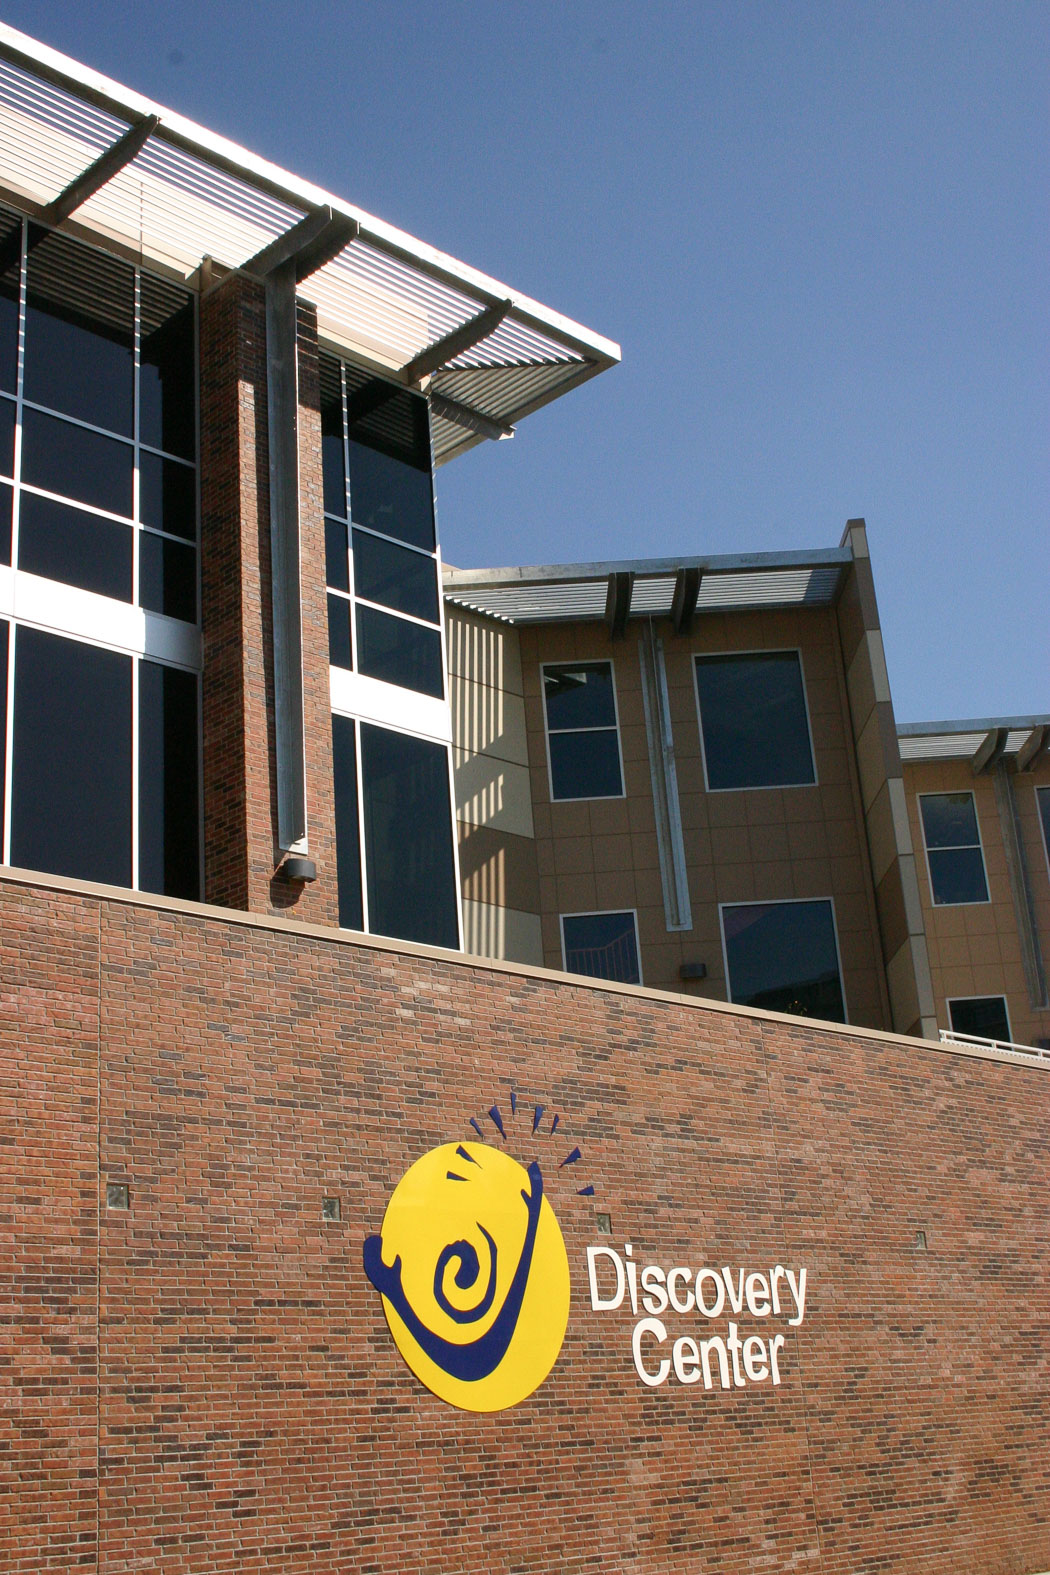 Discovery Center logo on brick wall